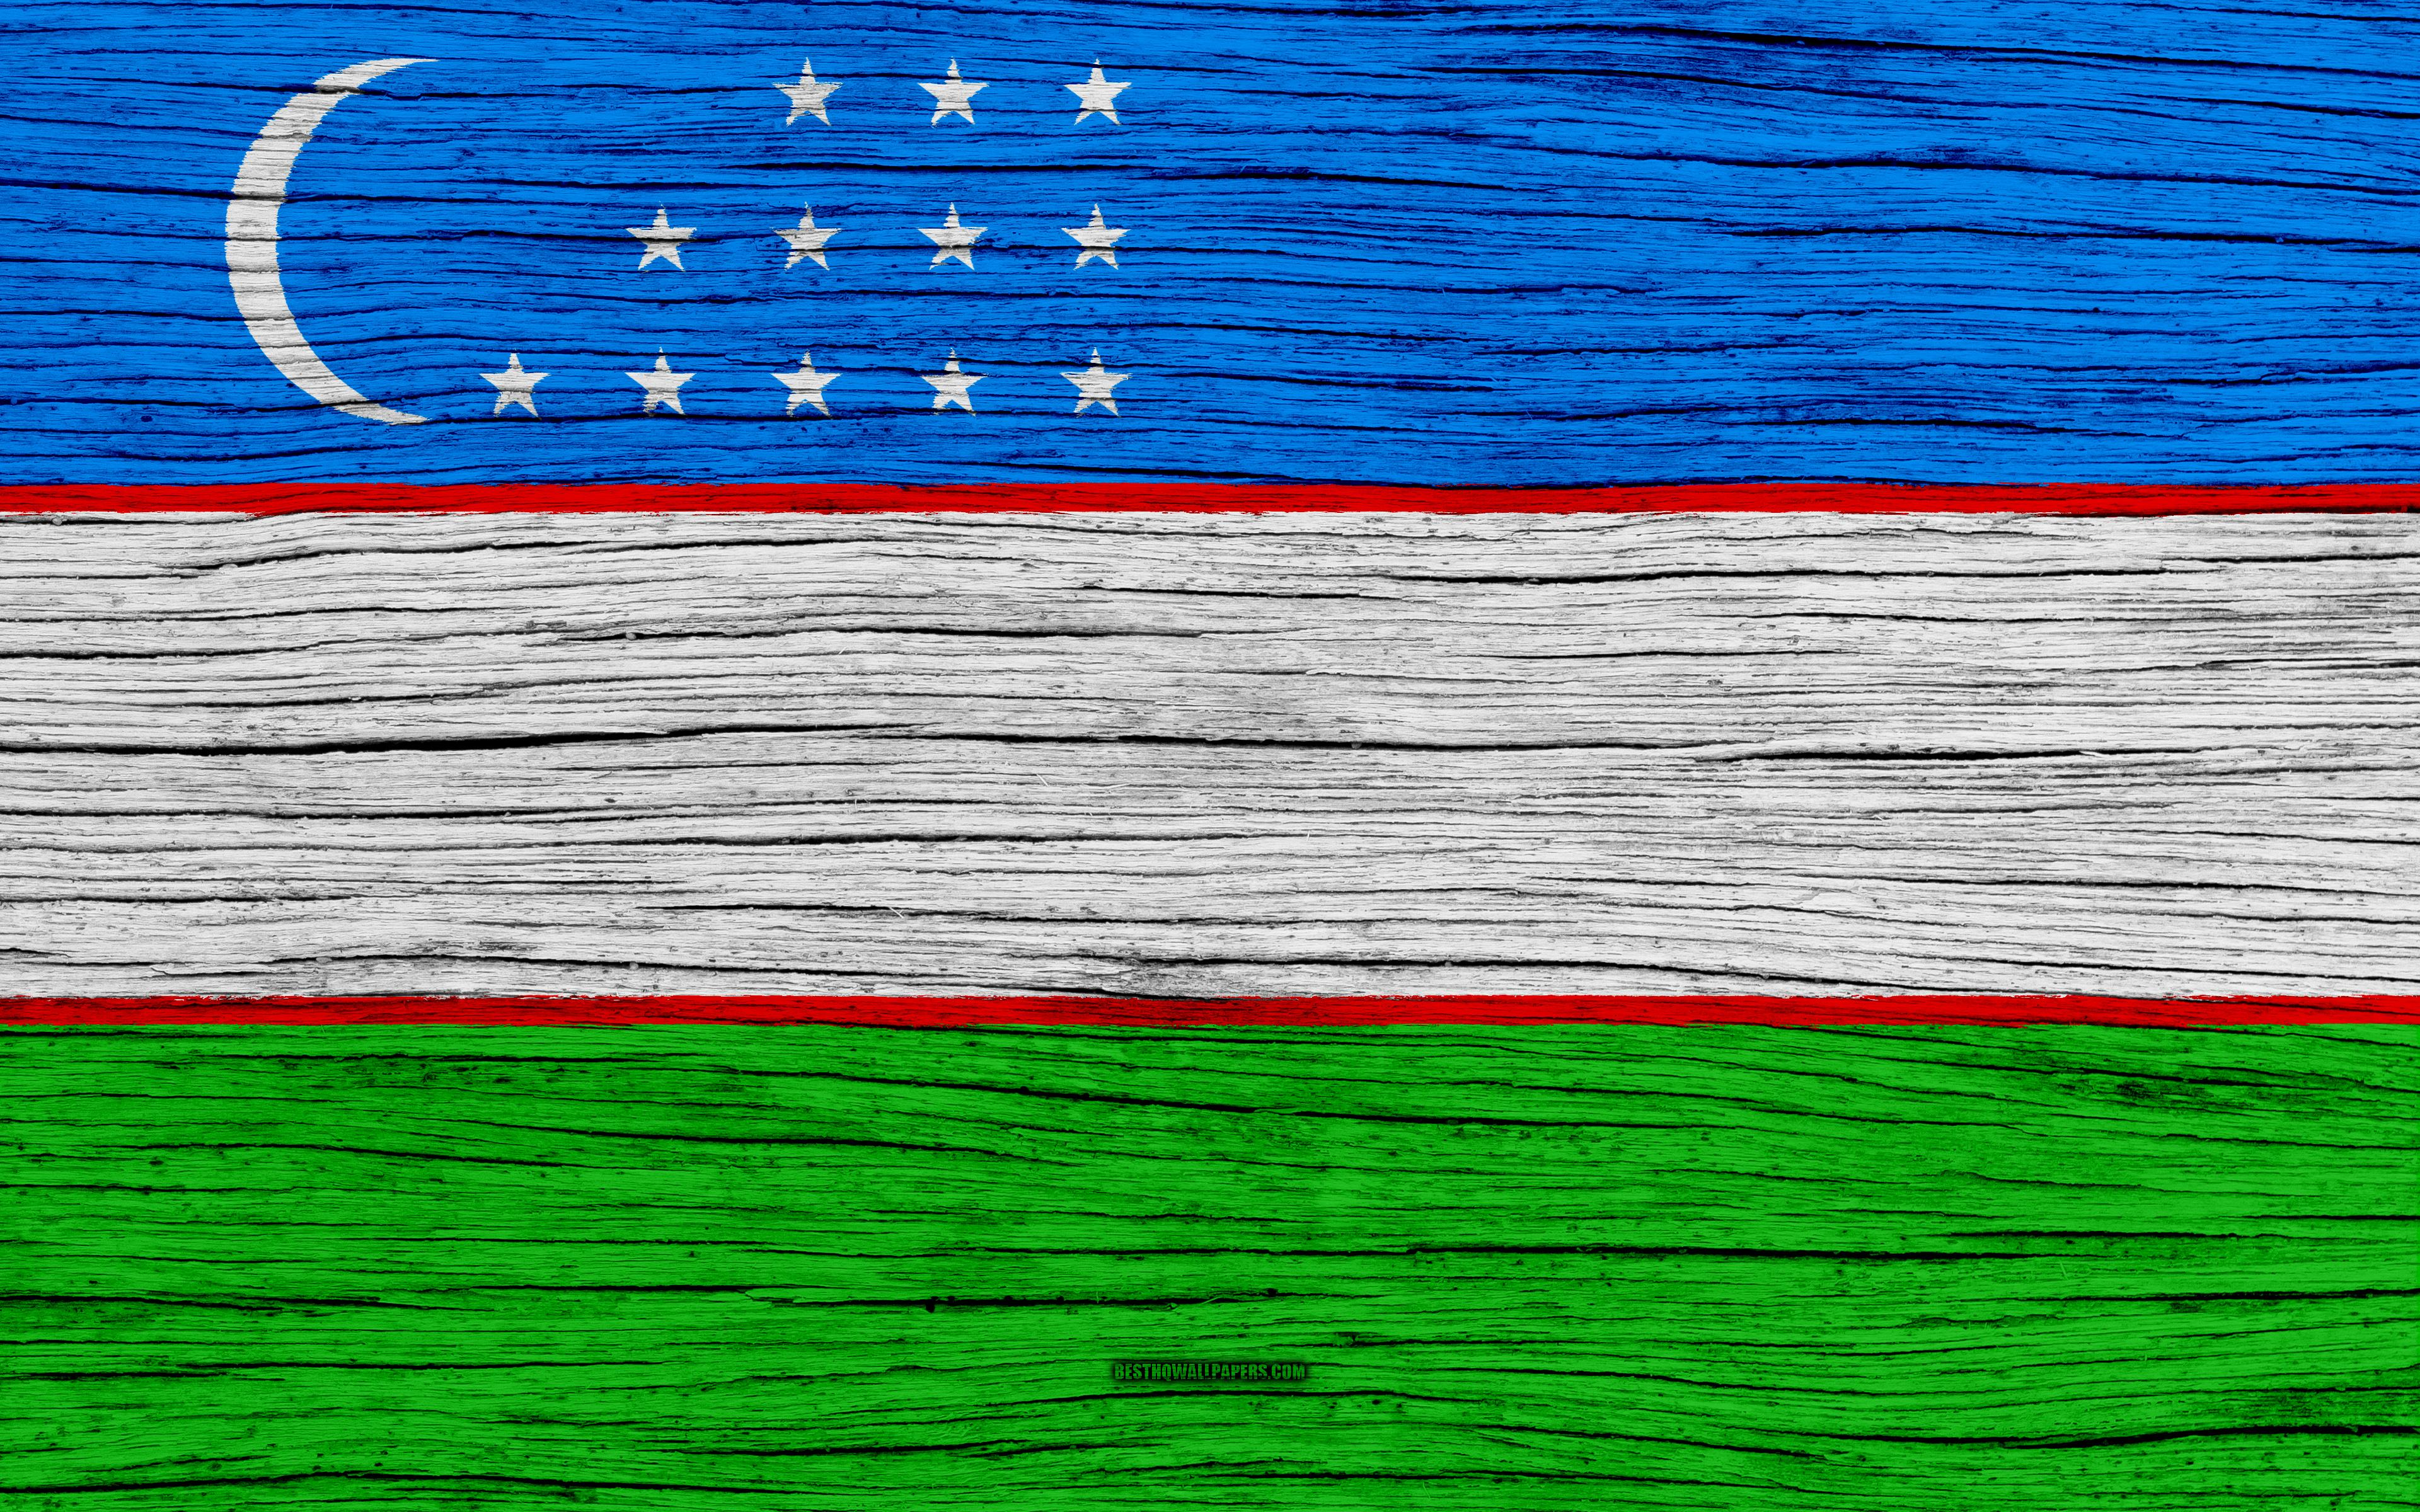 Download wallpapers Flag of Uzbekistan, 4k, Asia, wooden texture